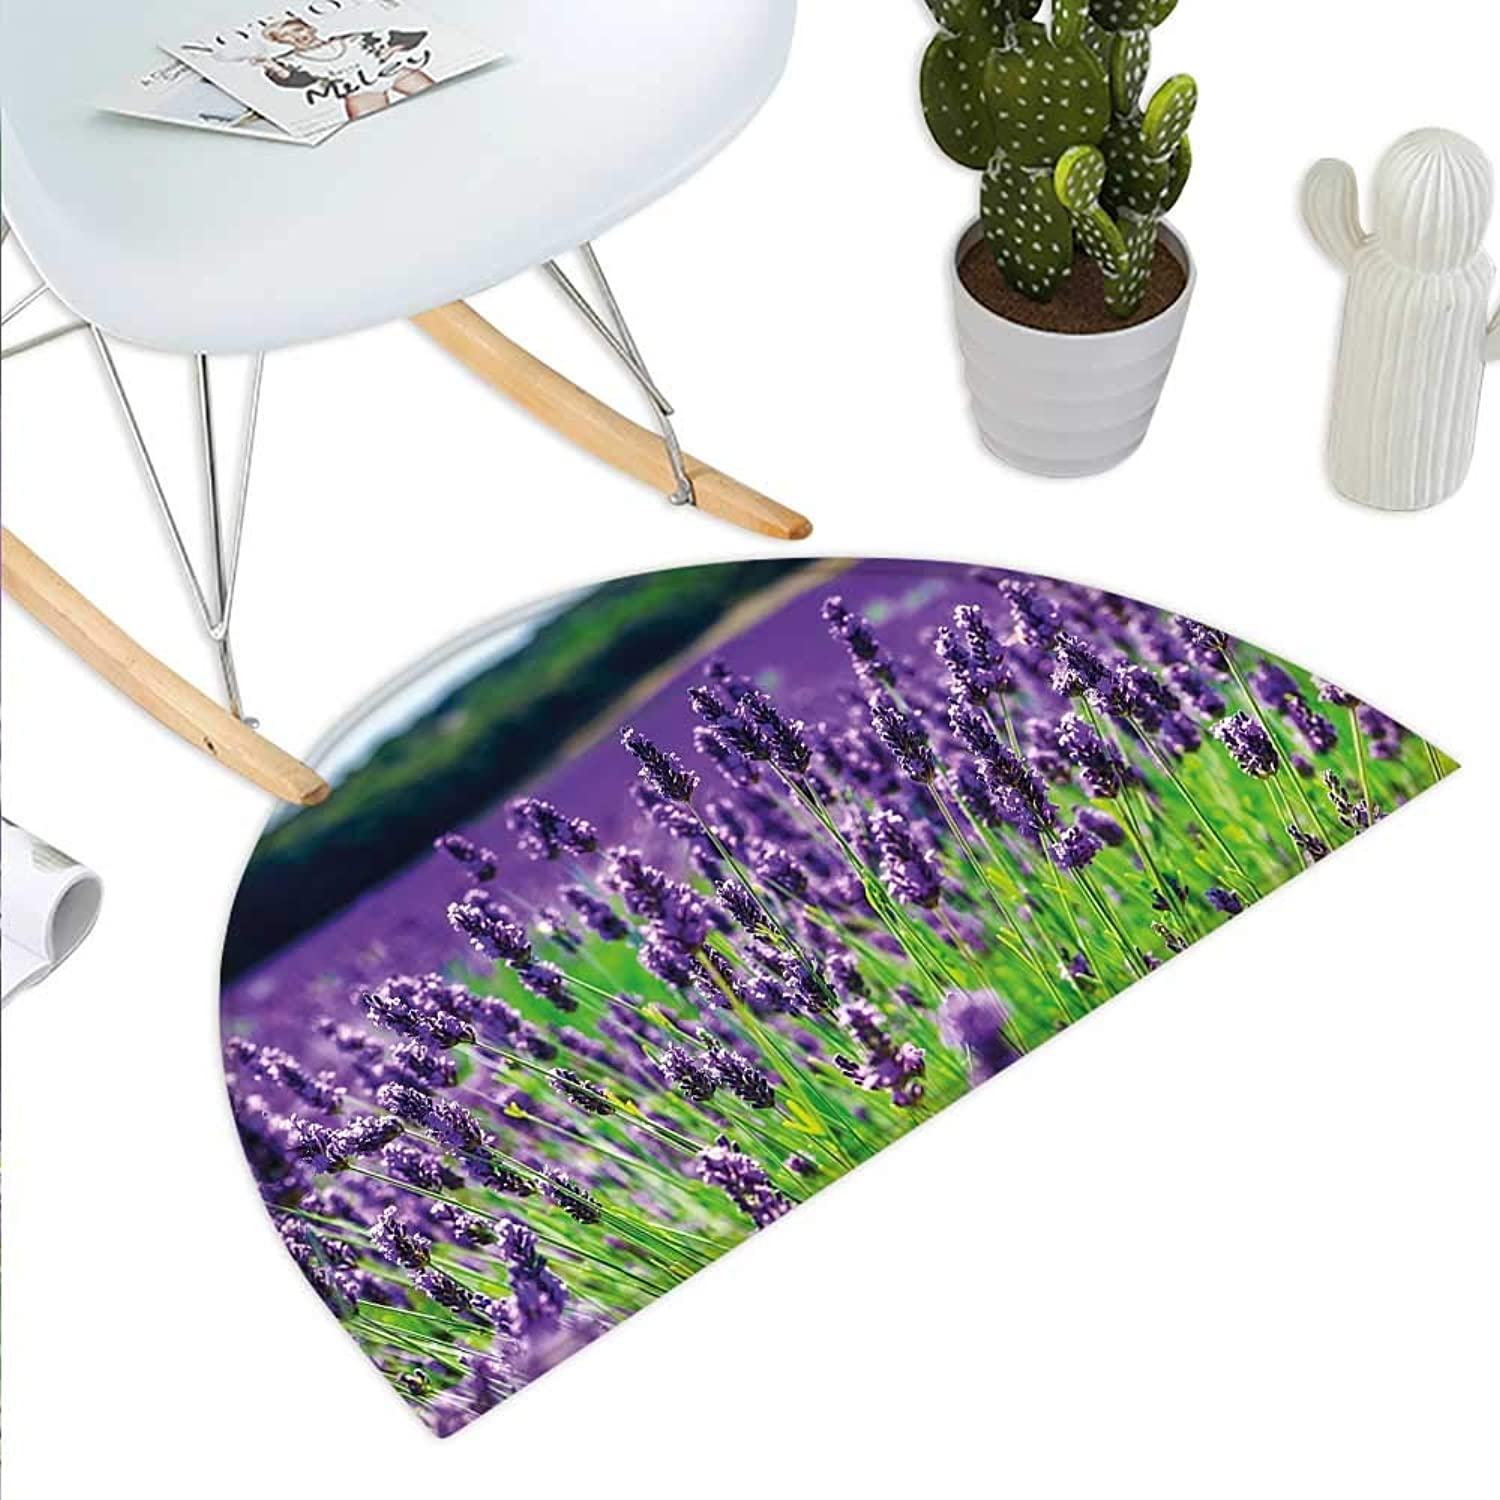 Lavender Semicircle Doormat Scenic Field in France Fragrant Blooming Countryside Agriculture Rural Theme Halfmoon doormats H 23.6  xD 35.4  purple Green